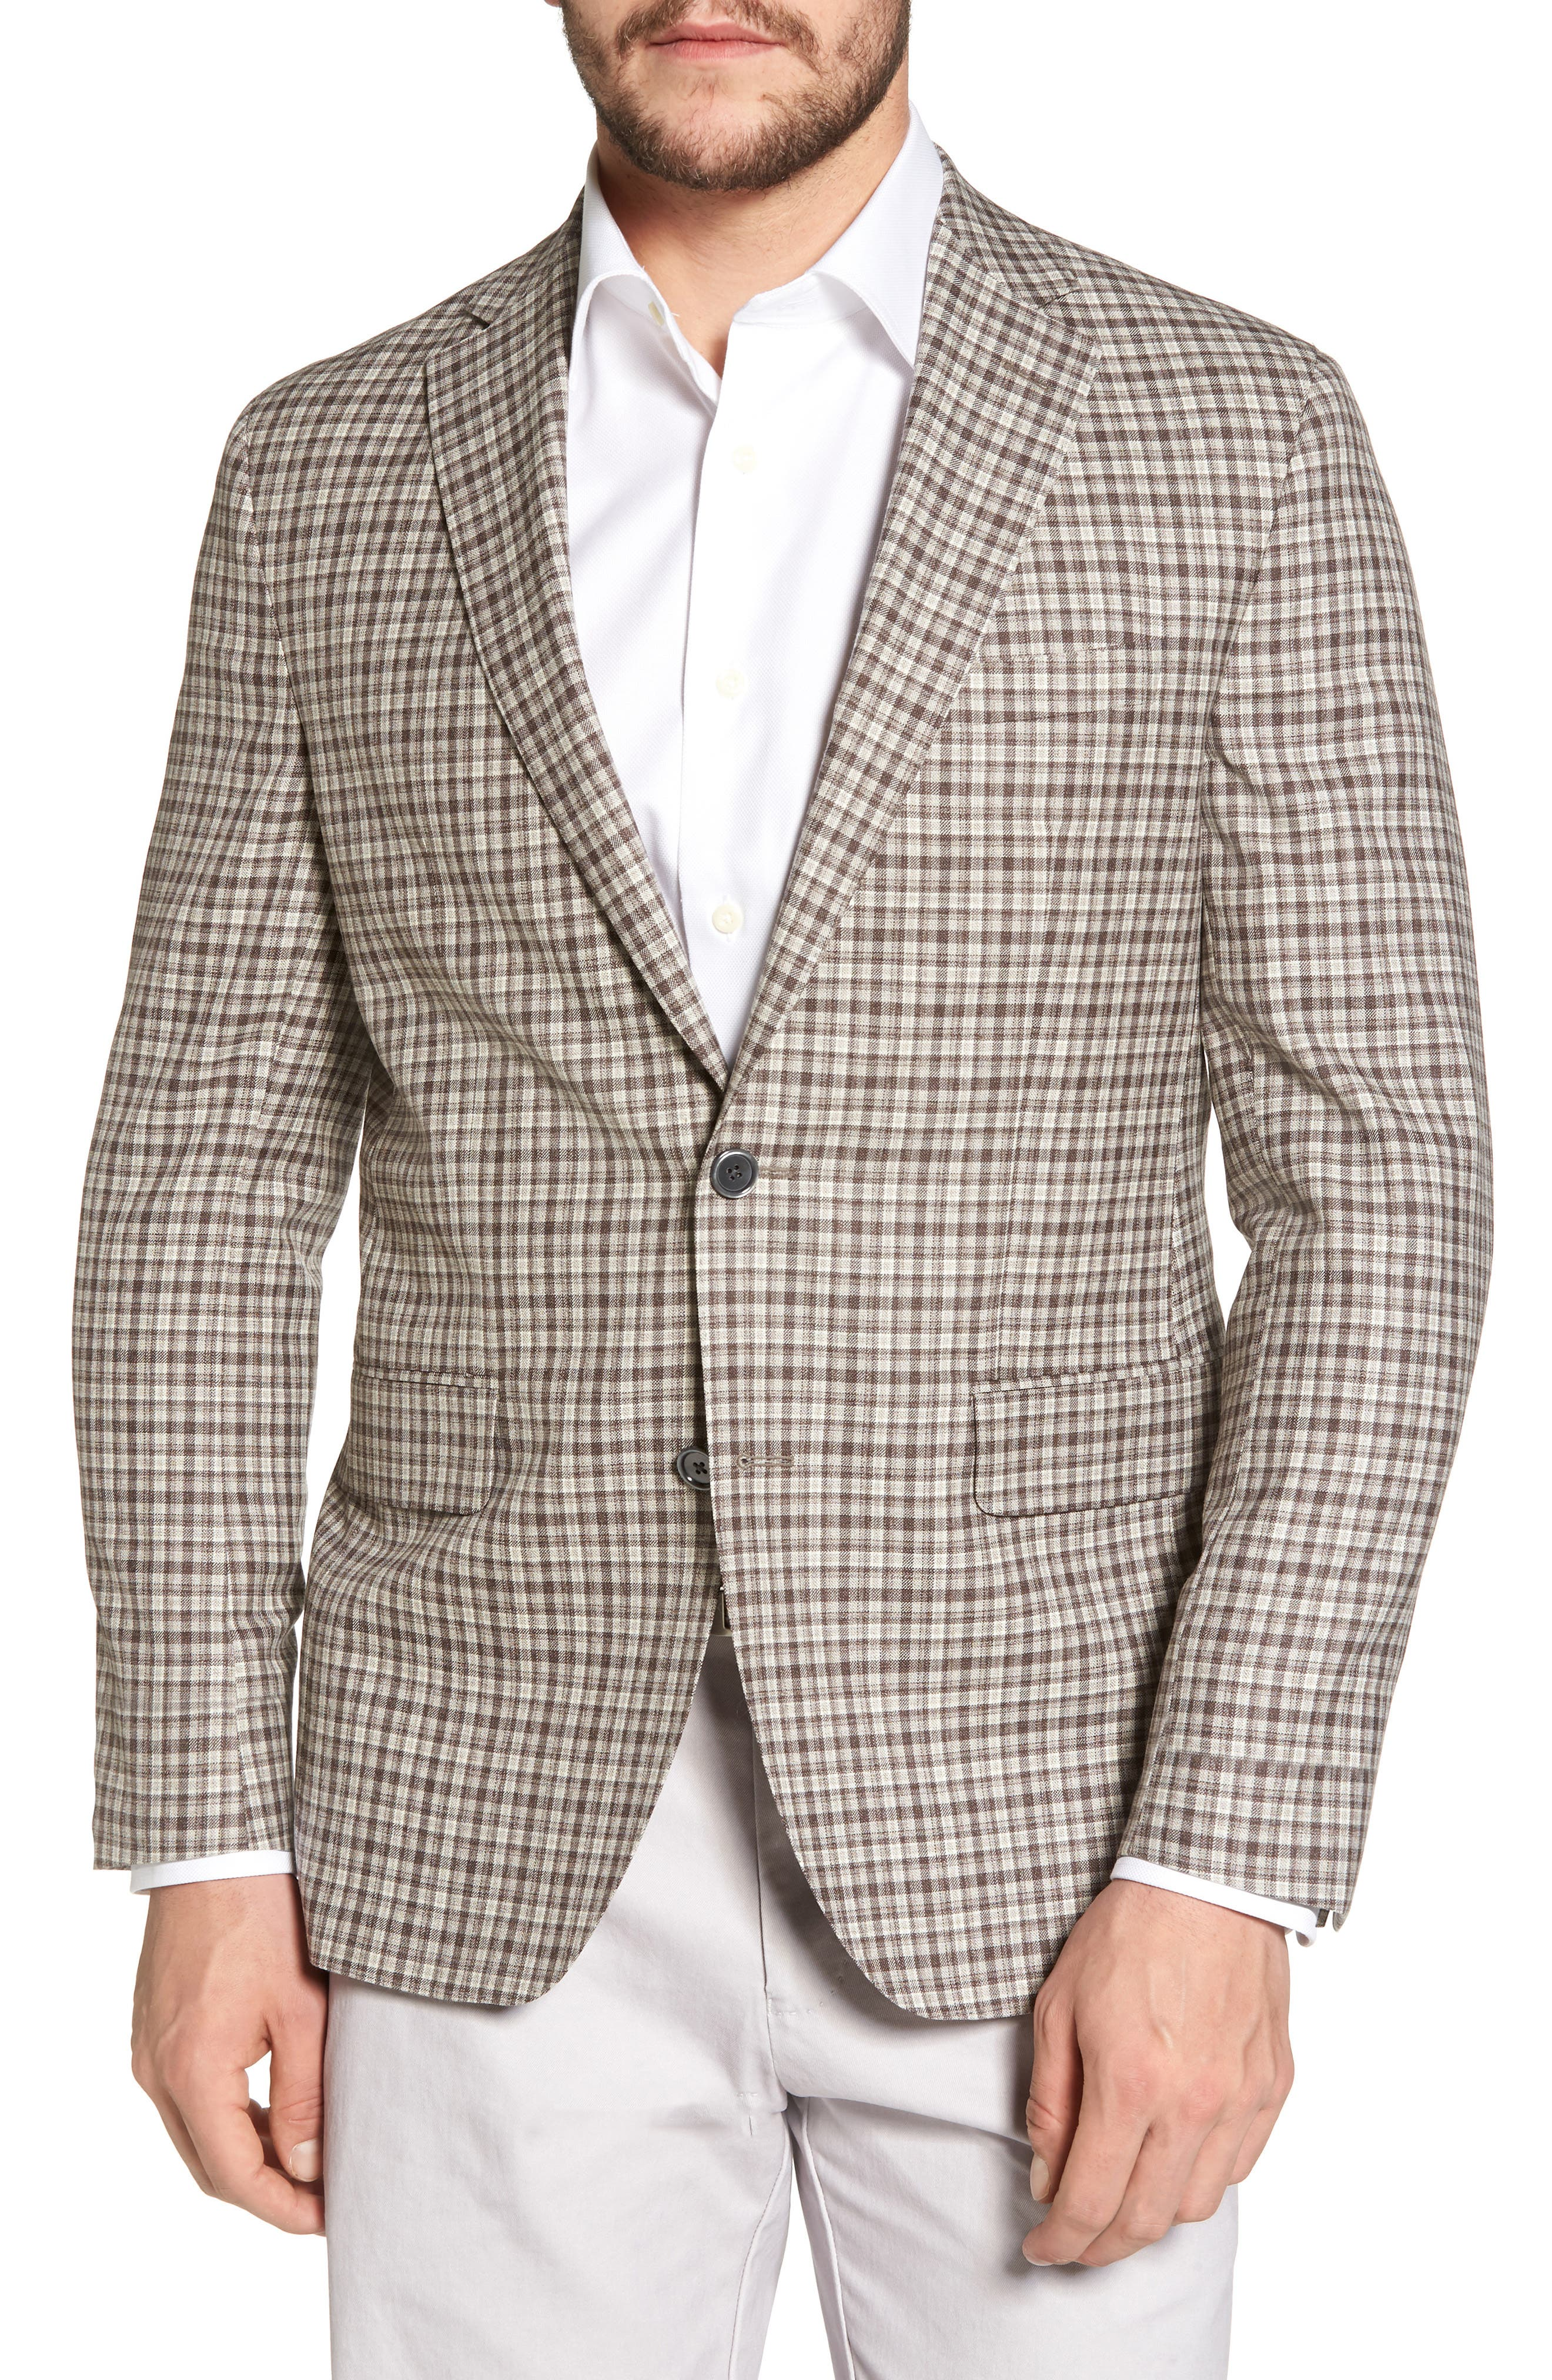 Arnold Classic Fit Plaid Wool Sport Coat,                             Main thumbnail 1, color,                             Brown